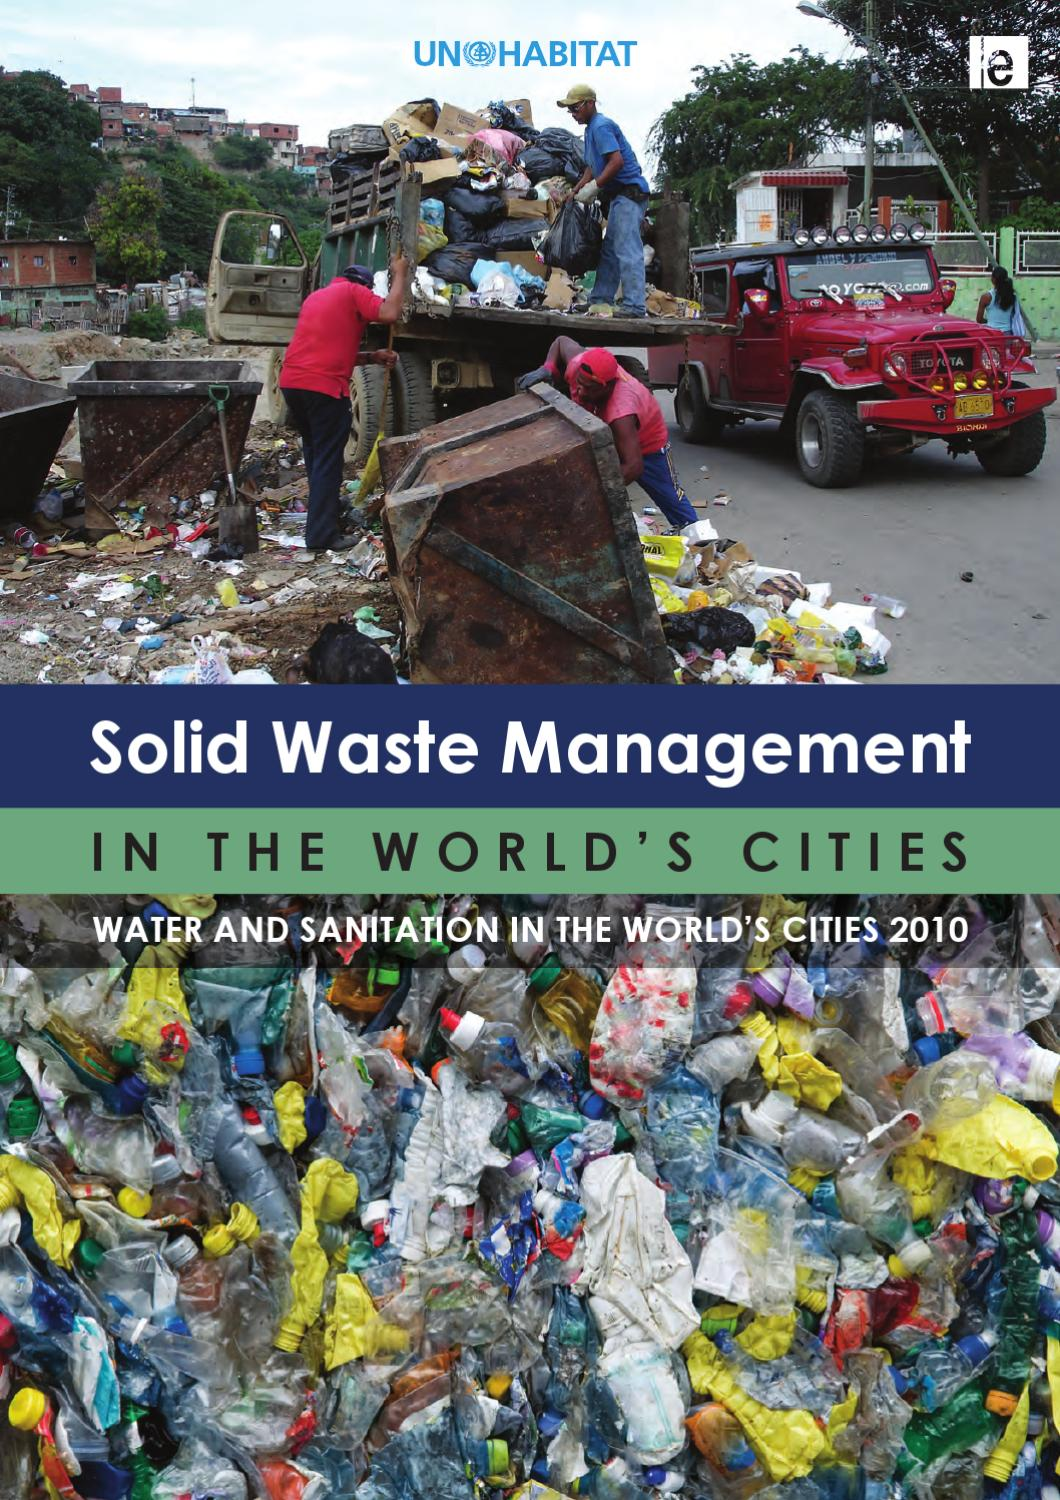 Solid Waste Management In The Worlds Cities Water And Sanitation Royal Enfield Bullet 65 Street Colour Wiring Harness Diagram 2010 By Un Habitat Issuu